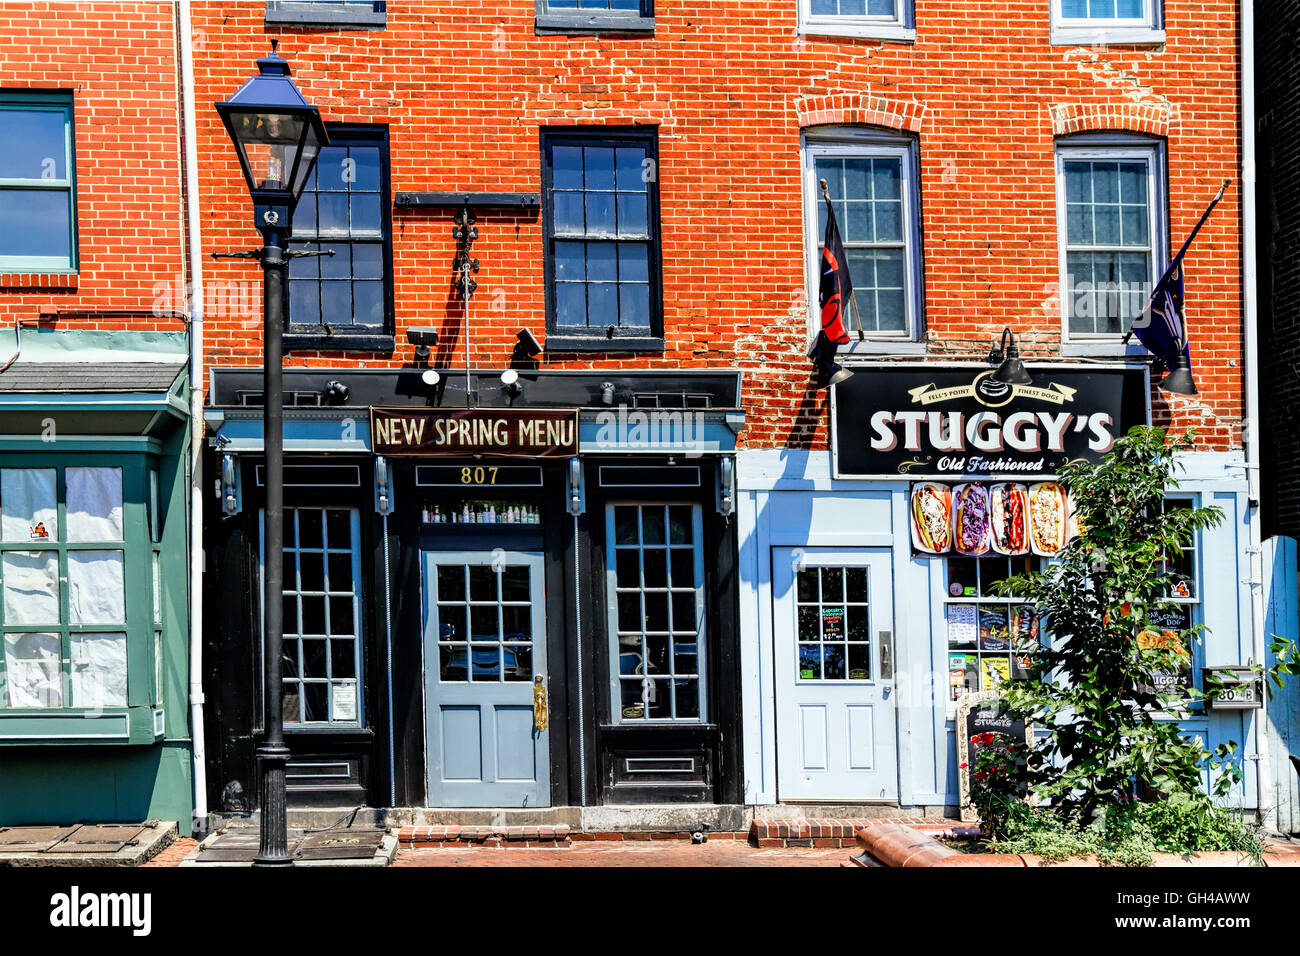 Frontal View of a  Pub at Fells Point, Baltimore, Maryland - Stock Image